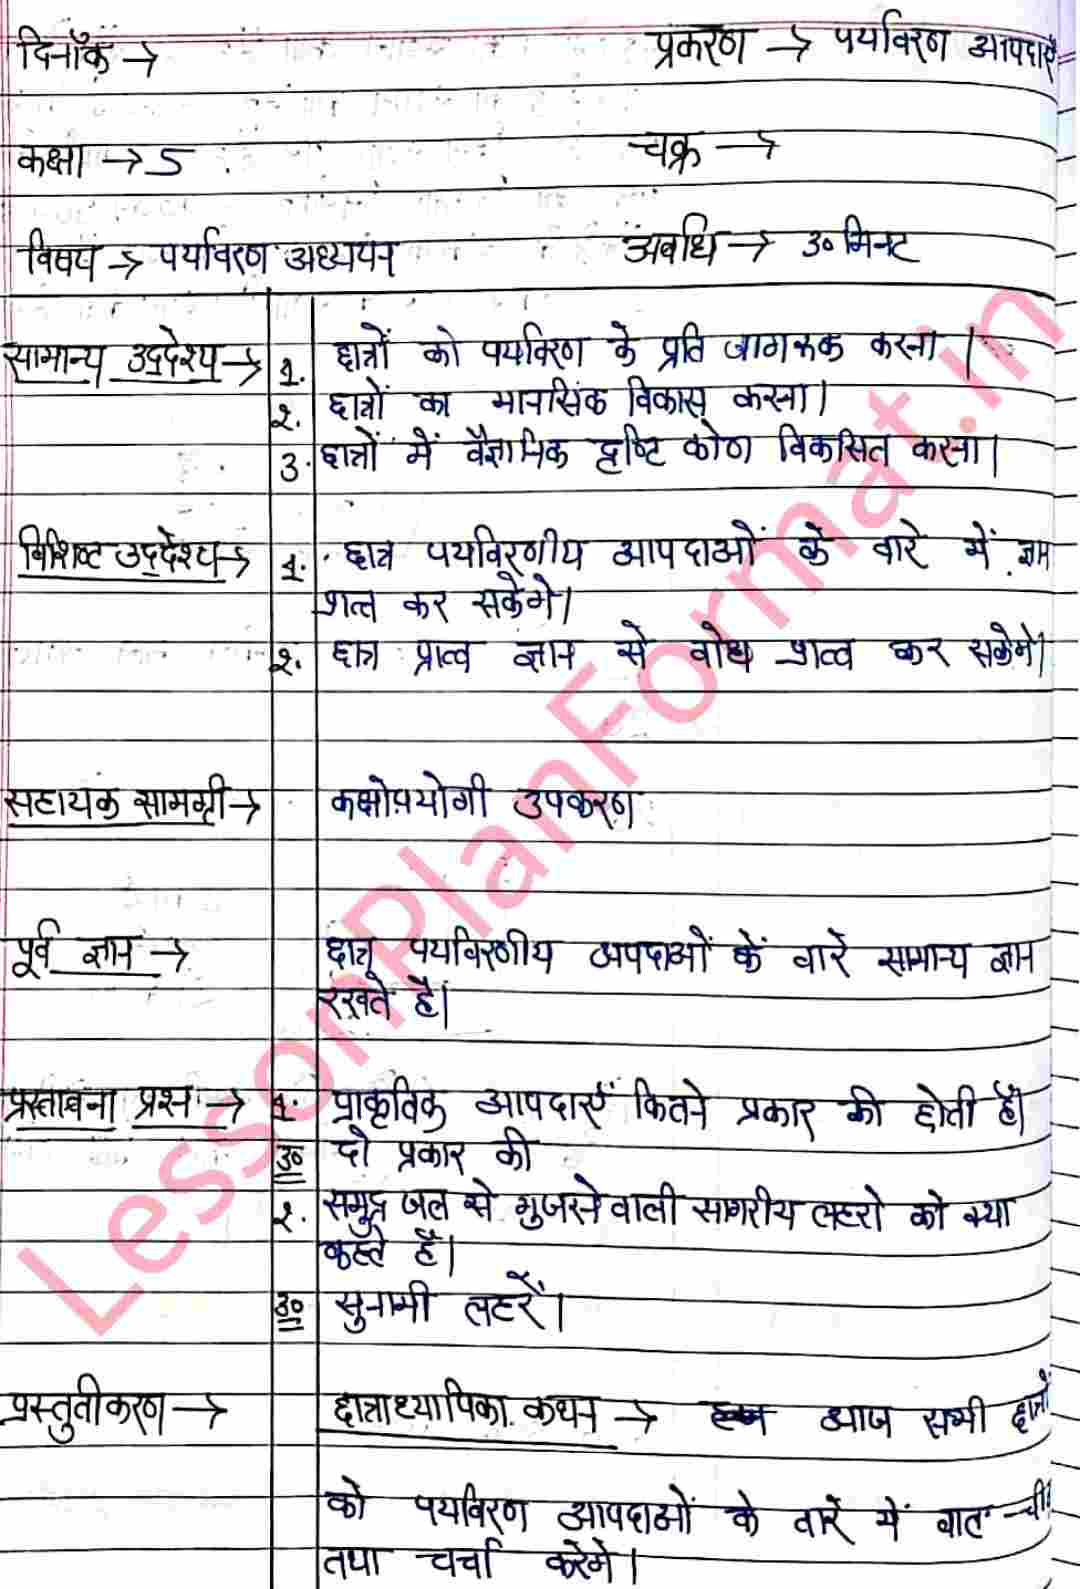 D El Ed Evs Lesson Plan for Class 5 in Hindi